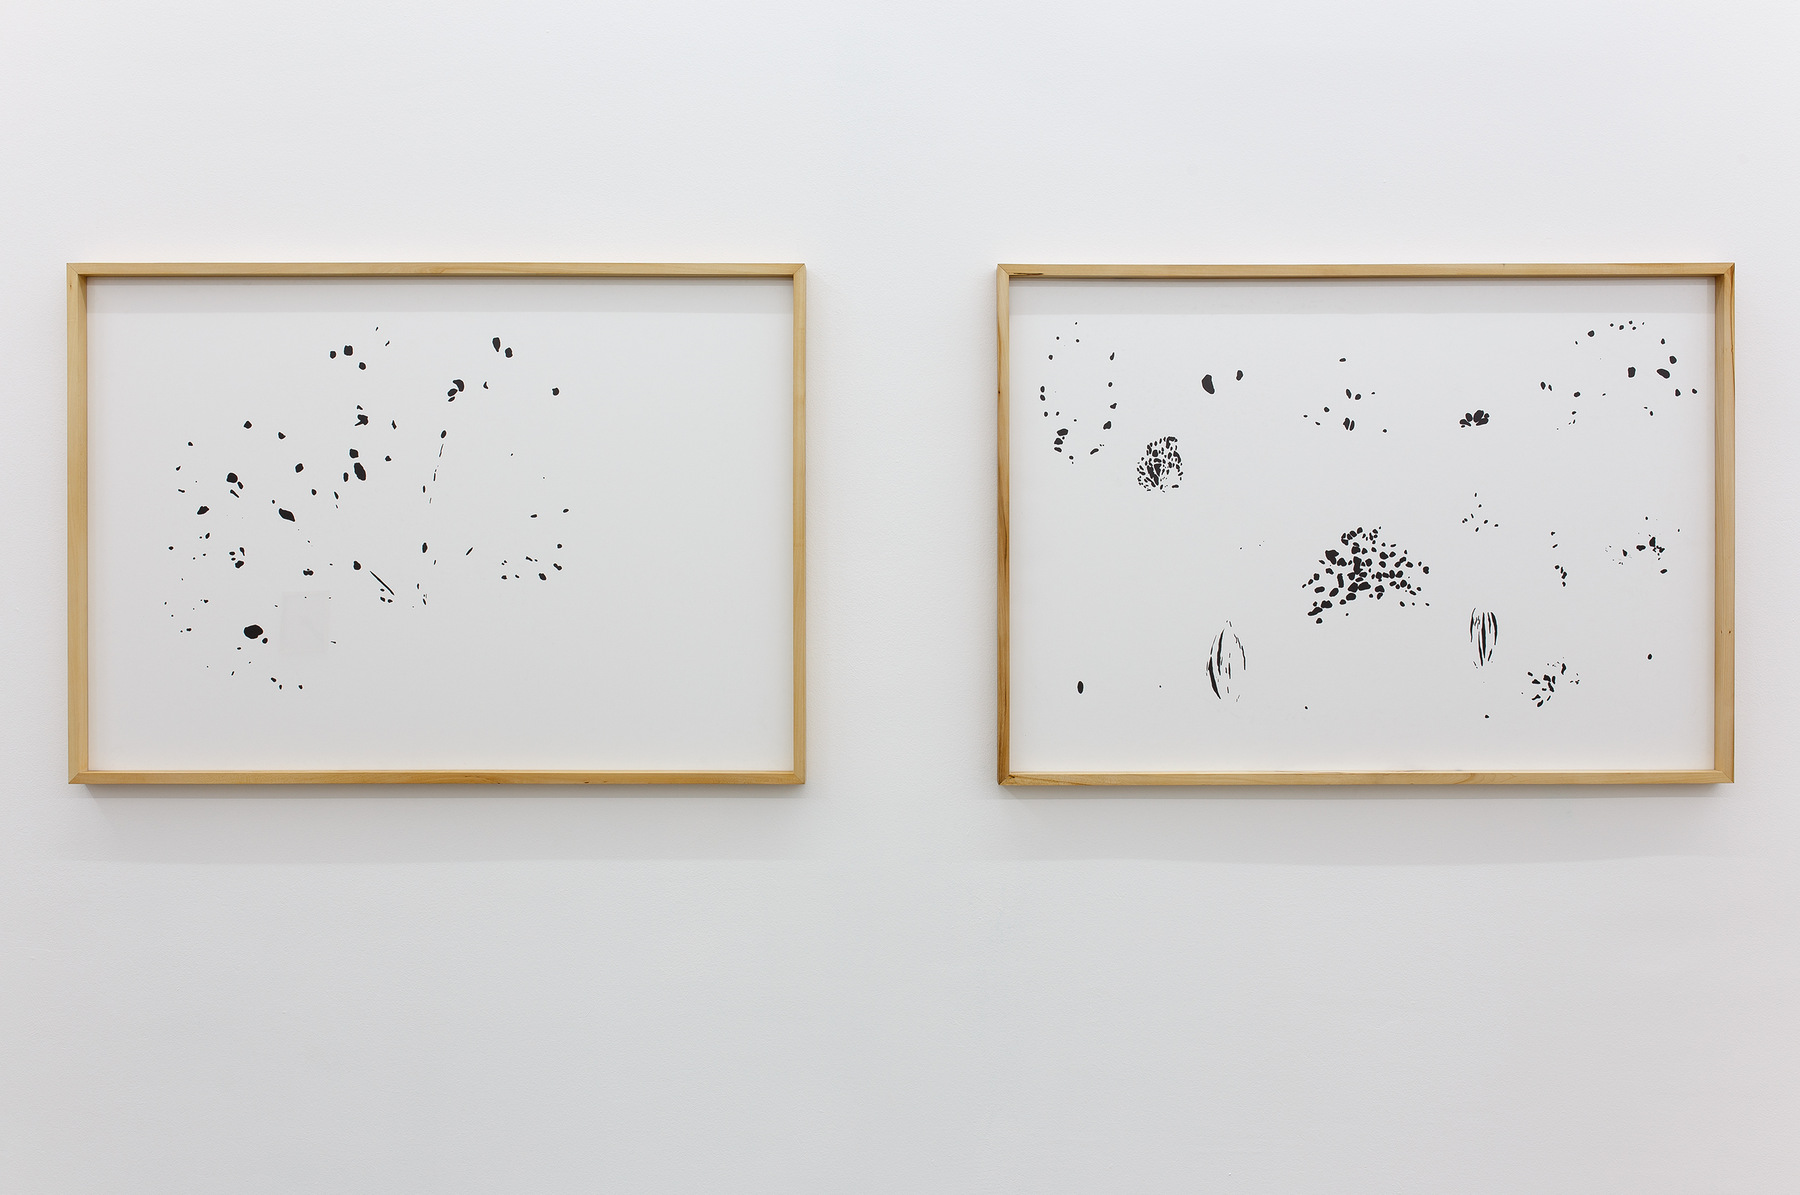 Drawings from caterpillars, 2015, ink on paper, 100 x 70 cm each